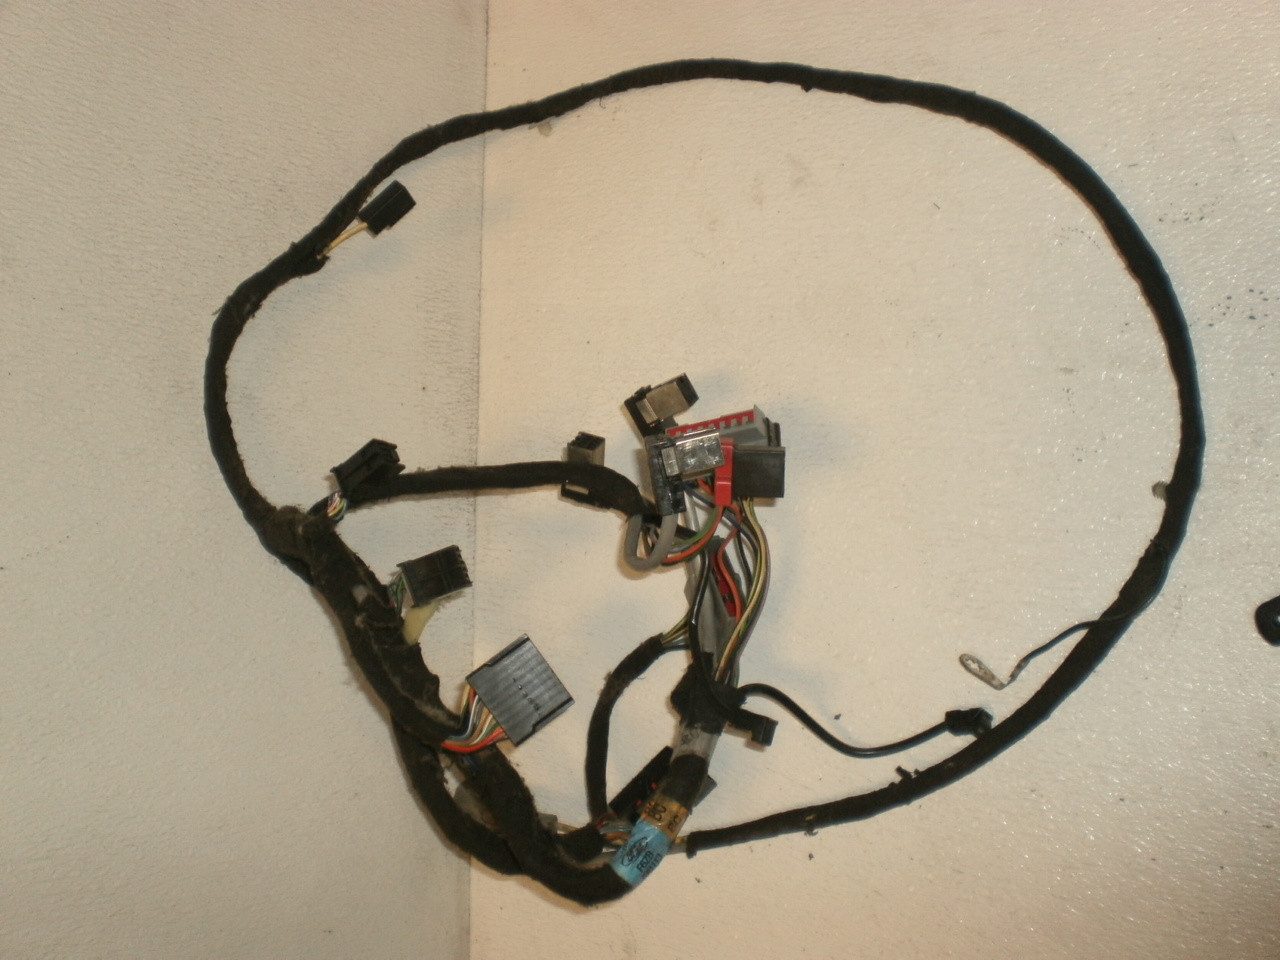 1995 2000 ford mustang front dash mach 460 wire harness amplifier to radio stereo with factory cd player compact disc f6zb 19b113 bc Long 460 Wiring Harness long 460 wiring diagram wiring